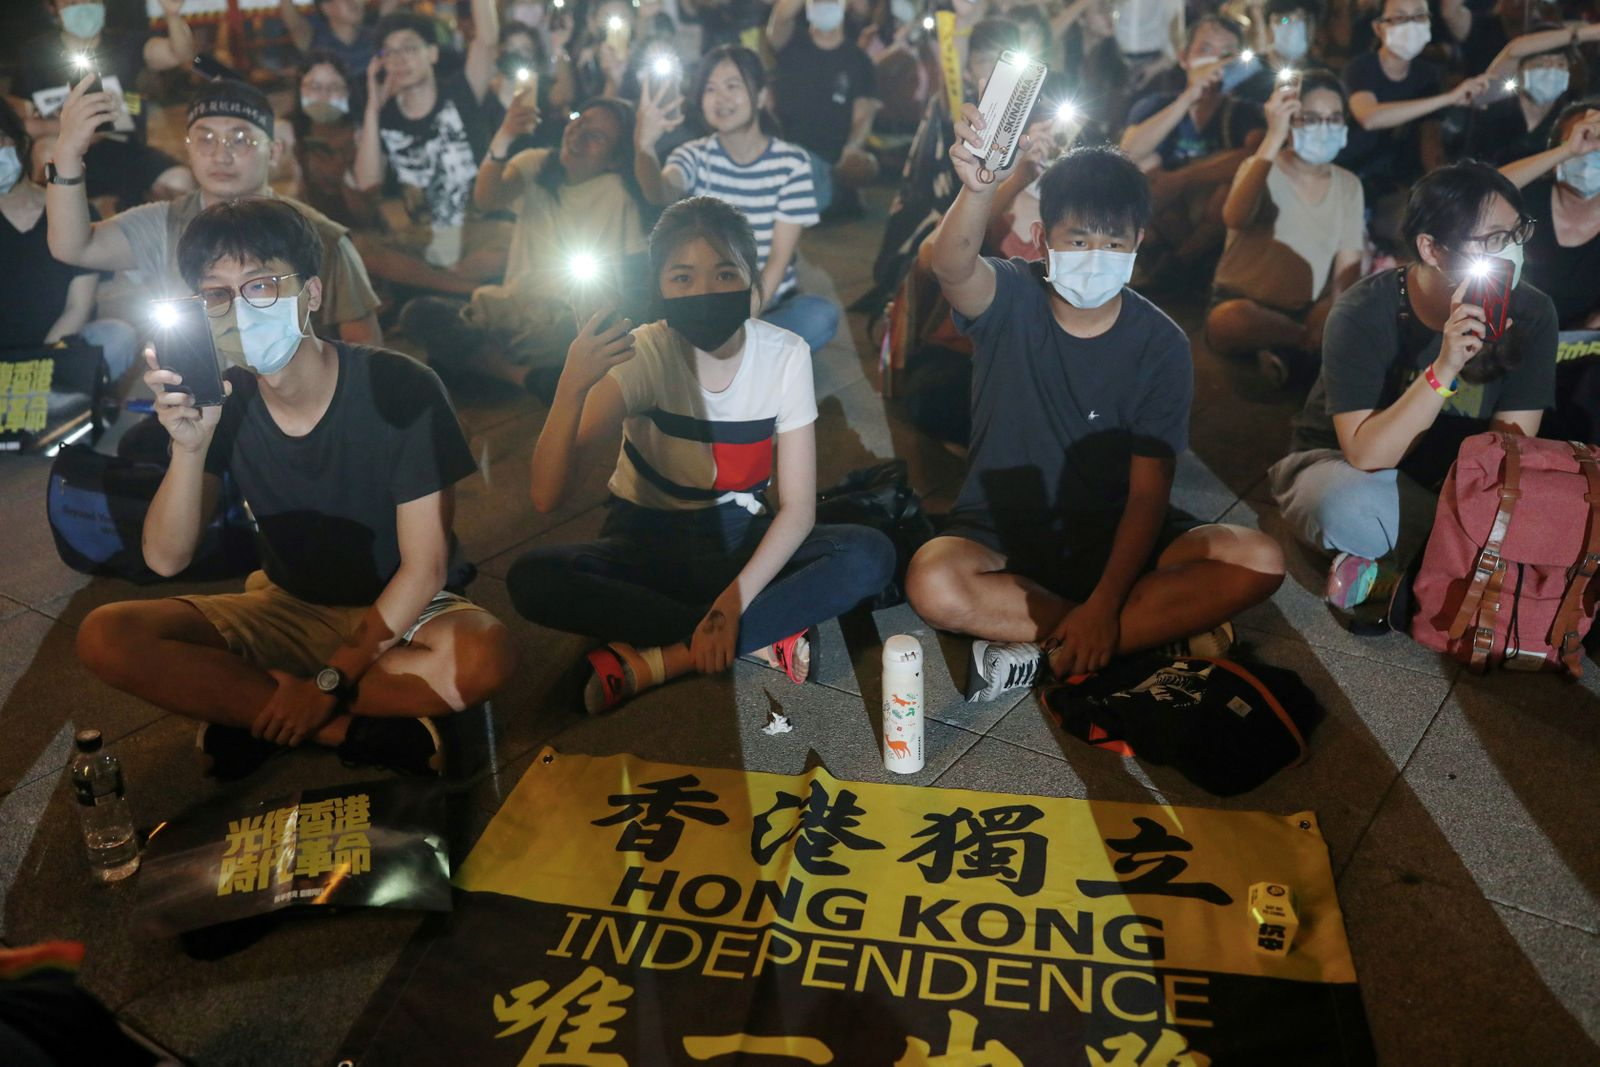 FILE PHOTO: Supporters of Hong Kong anti-government movement gather at Liberty Square in Taipei